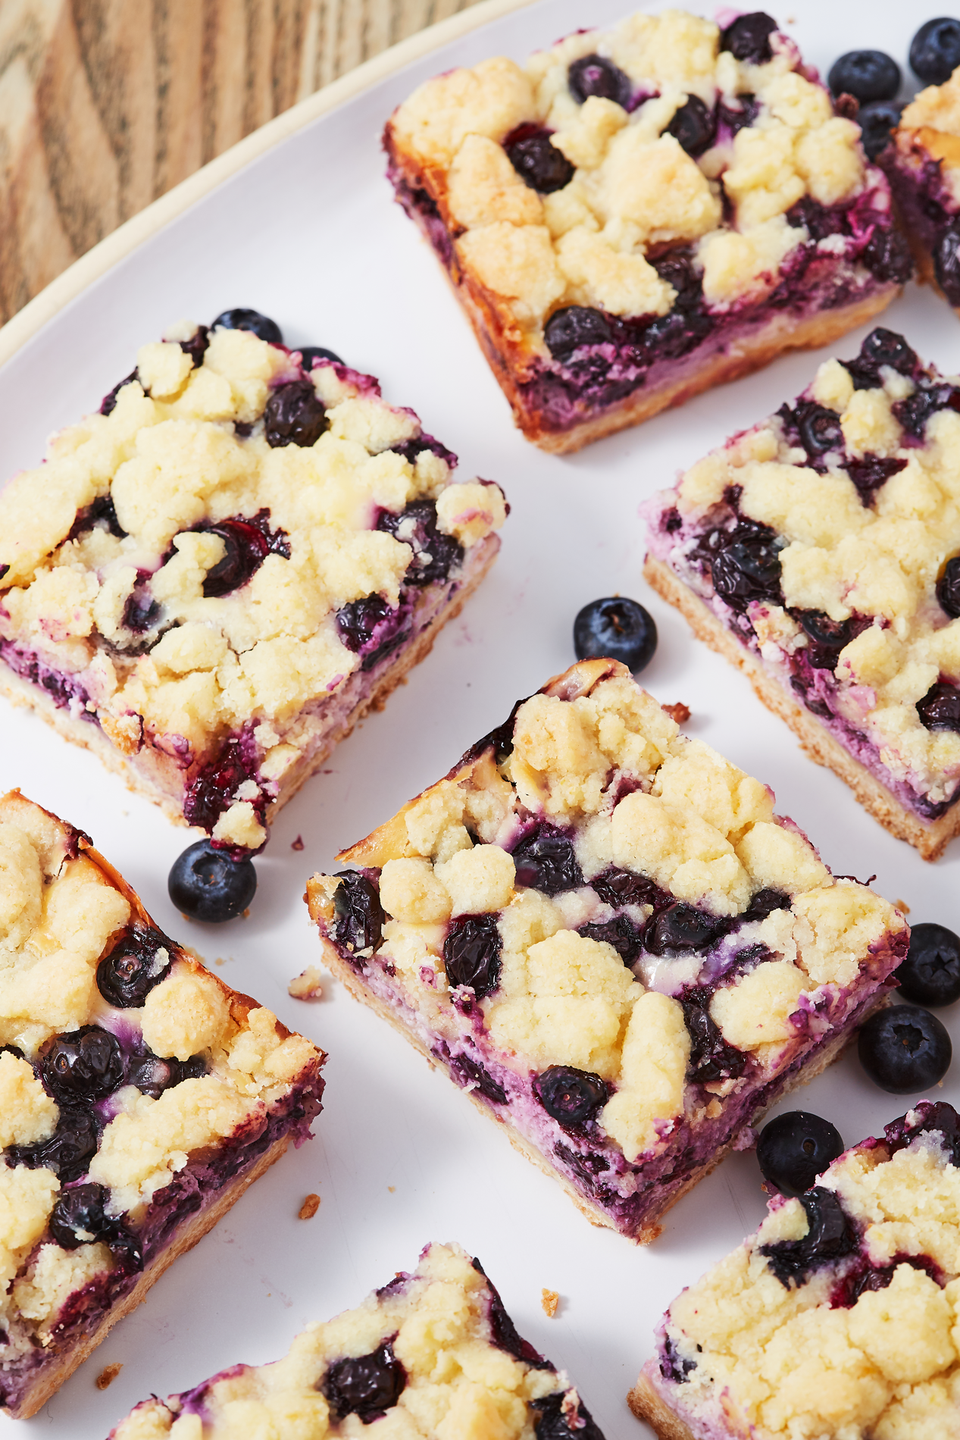 """<p>This will always be one of our favorite flavor combos.</p><p>Get the recipe from <a href=""""https://www.delish.com/cooking/recipe-ideas/a27020536/blueberry-lemon-pie-bars-recipe/"""" rel=""""nofollow noopener"""" target=""""_blank"""" data-ylk=""""slk:Delish"""" class=""""link rapid-noclick-resp"""">Delish</a>.</p>"""